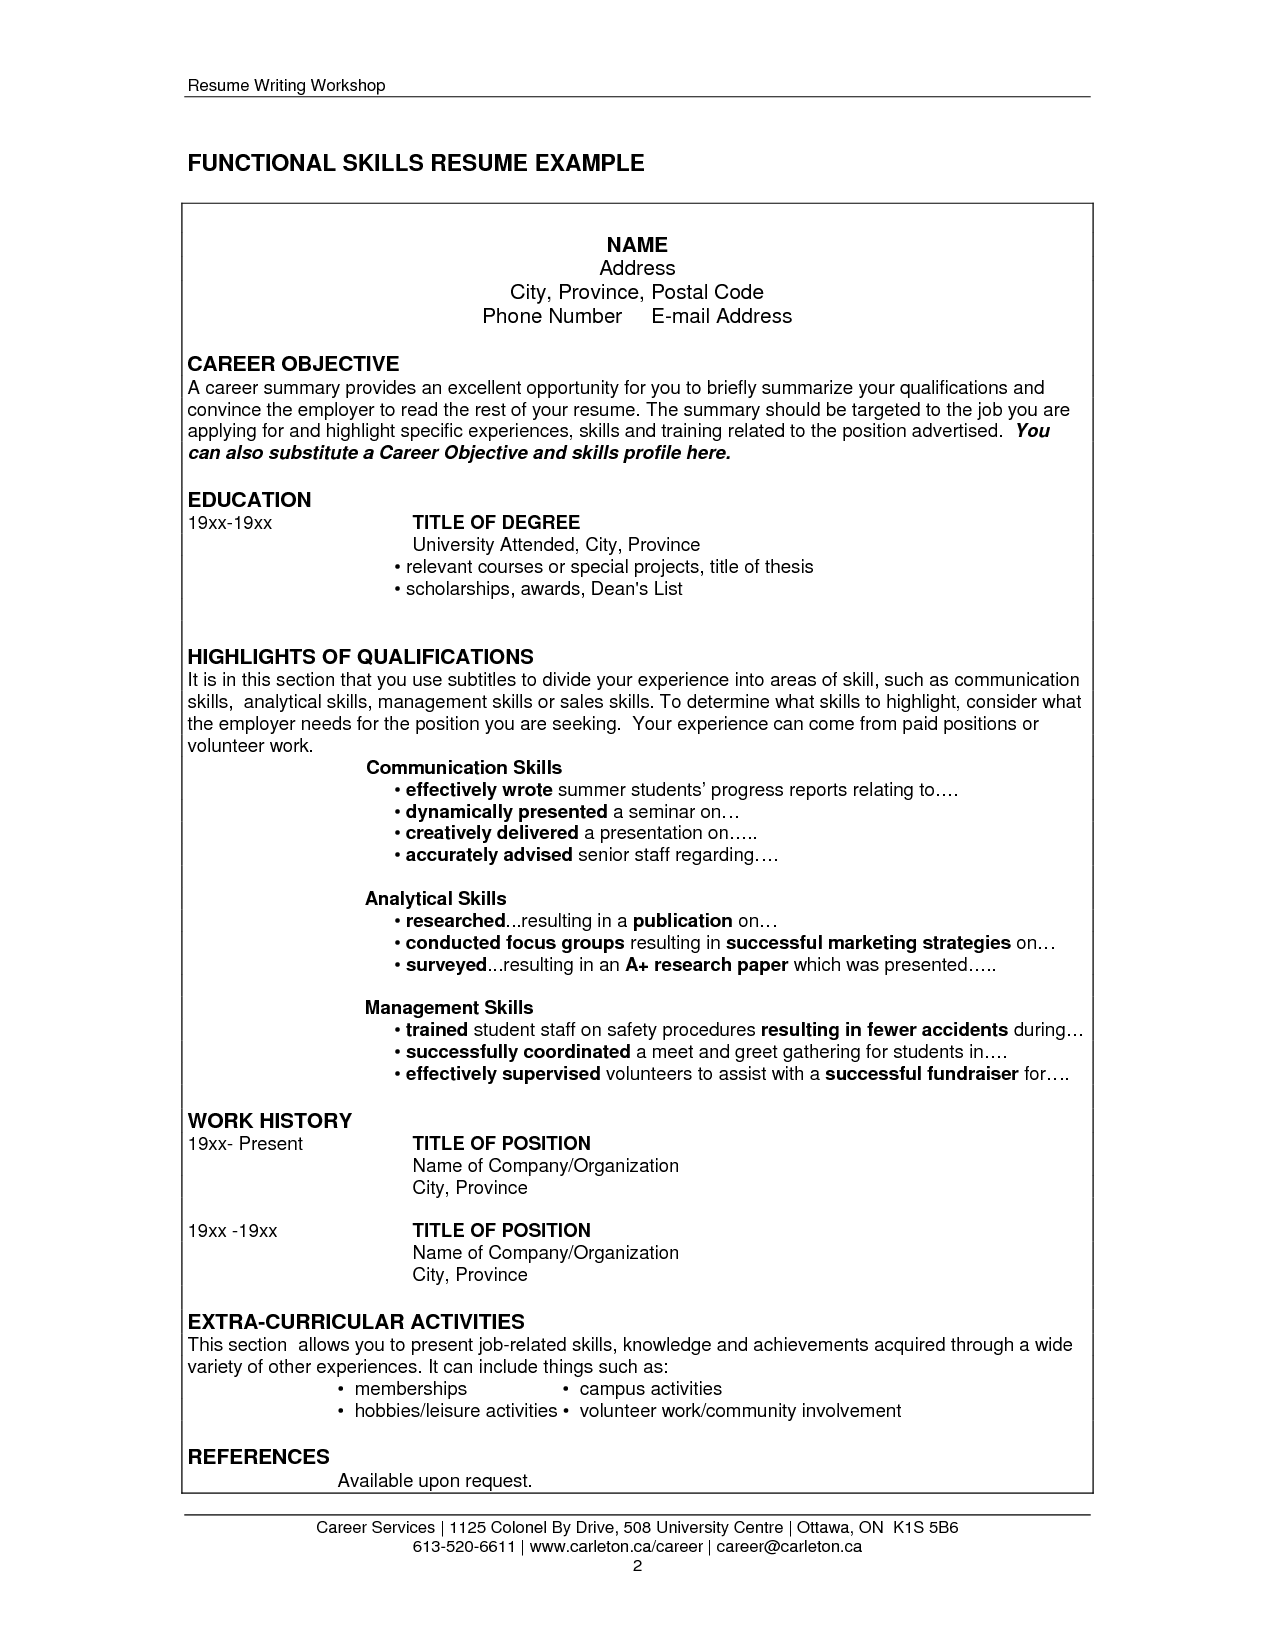 Technical Resume Template Image Result For Skills Resume Format  Business  Pinterest